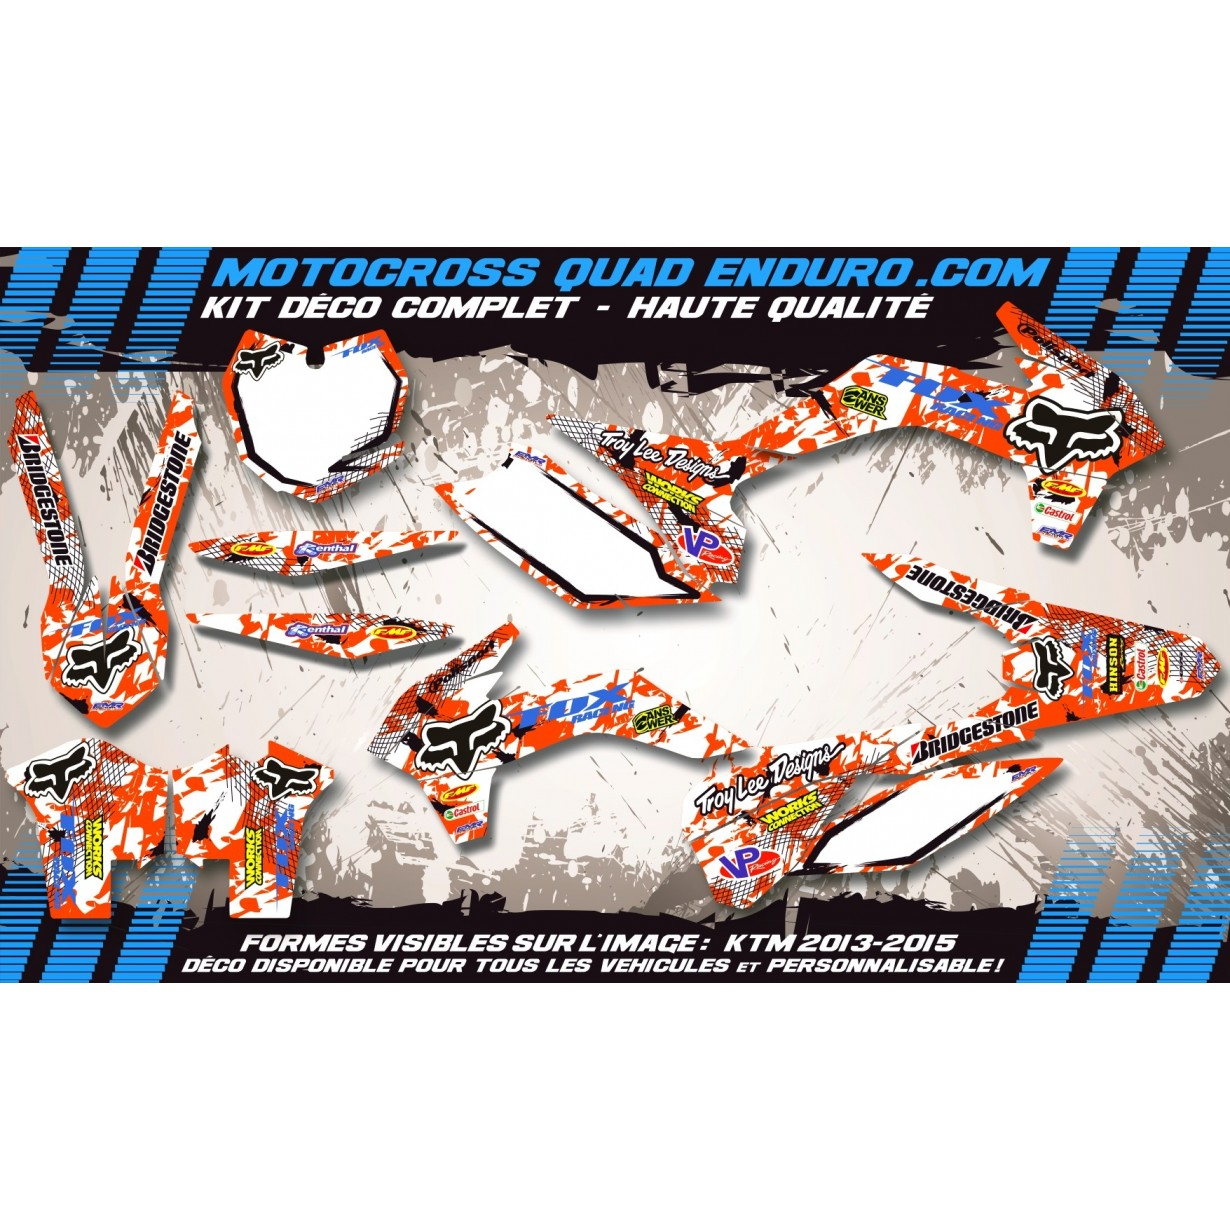 KIT DÉCO Perso EXC 450-525 03 FOX MA9C